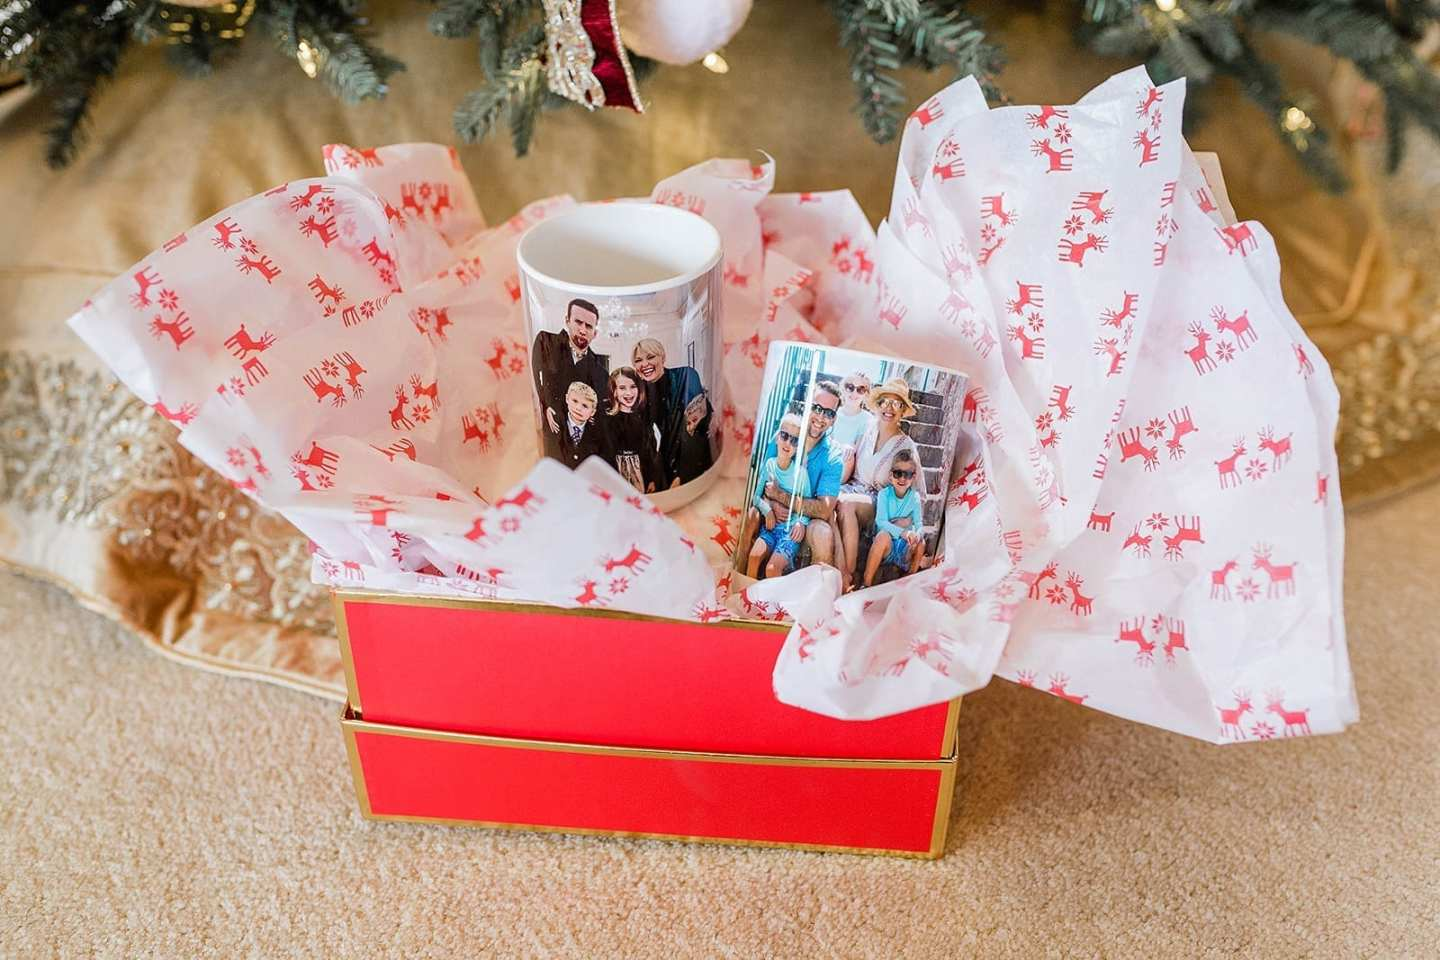 Personalized Mugs as present ideas for family or friend gifts.